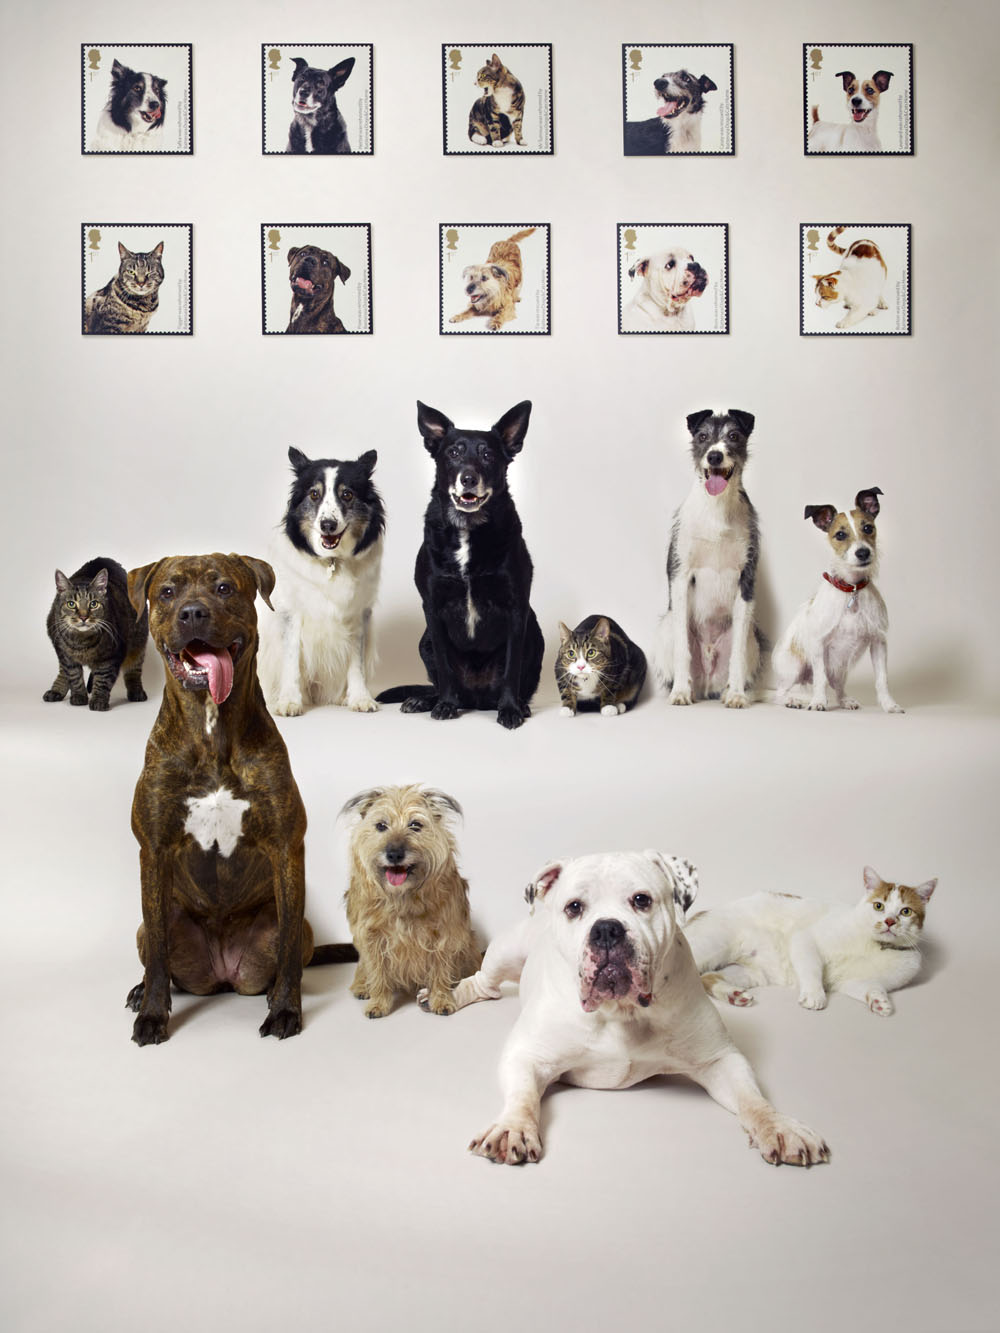 The Royal Mail celebrated the 150th anniversary of the world famous Battersea Dogs and Cats Home with a commemorative set of ten 1st Class stamps. Pictured in this montage of the starring animals are: Top Row [L-R] Tigger, a tomcat; Tafka, a collie; Herbie, a mongrel; Mr Tumnus, a tomcat; Casey, a lurcher; Leonard, a terrier; Bottom row [L-R] Pixie, a mastiff; Tia, a terrier; Boris, a bulldog and Button, a tomcat